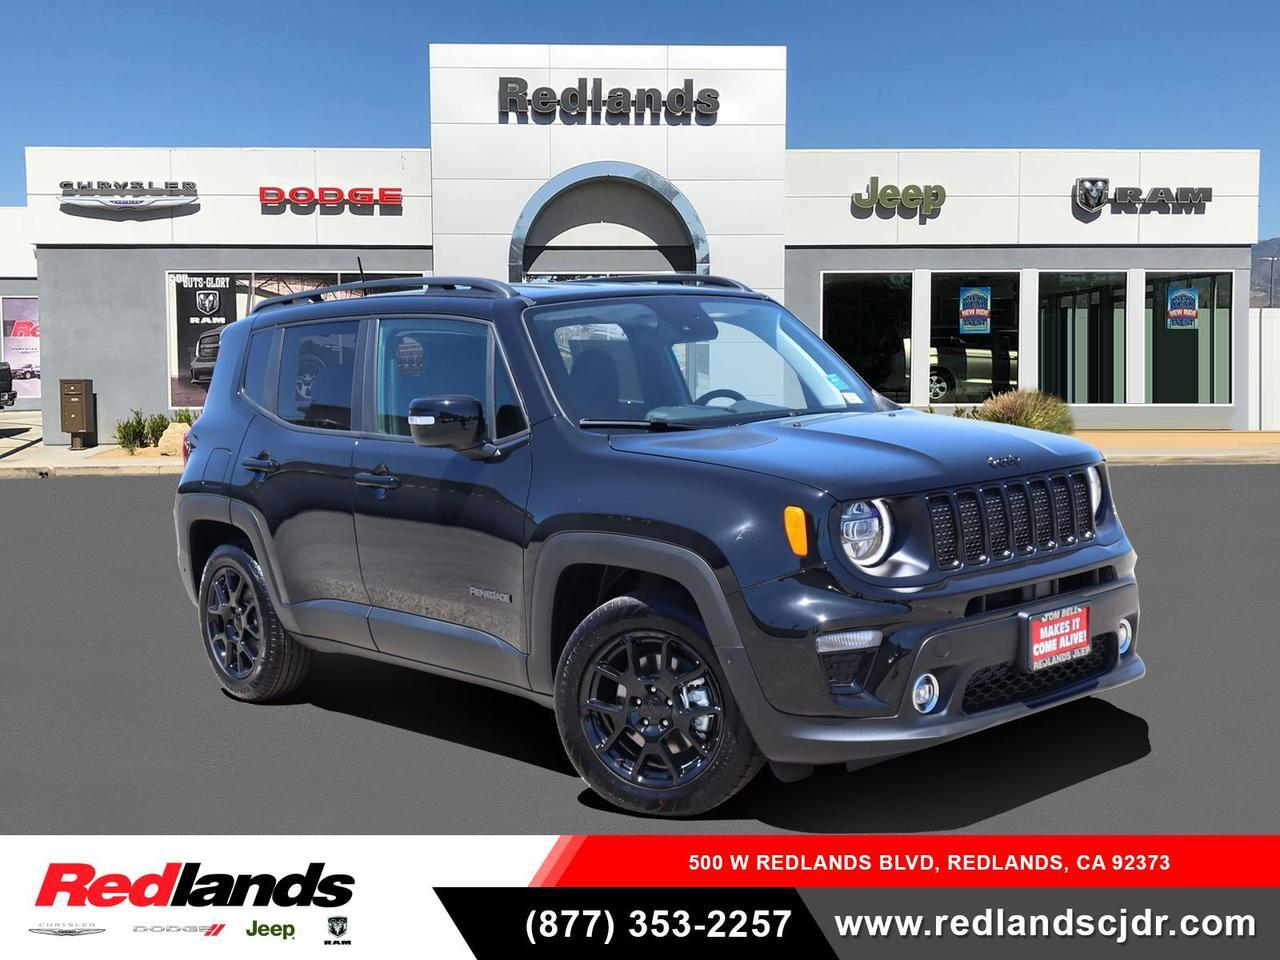 New 2020 Jeep Renegade Altitude Fwd Black Clear Coat Exterior Paint For Sale In Redlands Ca Zacnjabb0lpl55186